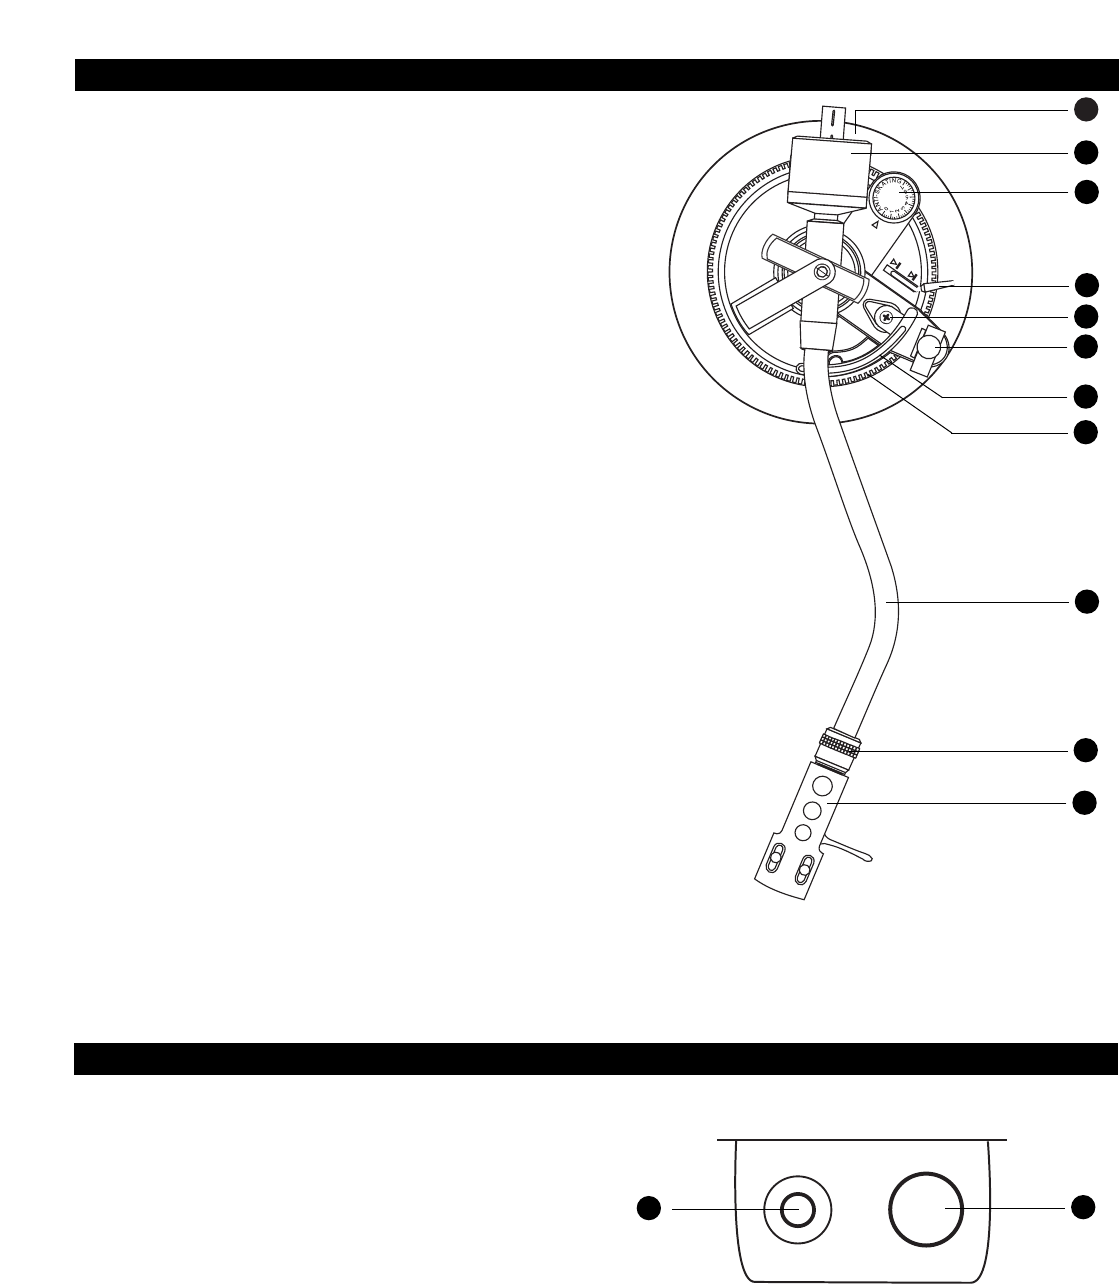 Page 4 of Audio-Technica Turntable AT-PL120 User Guide